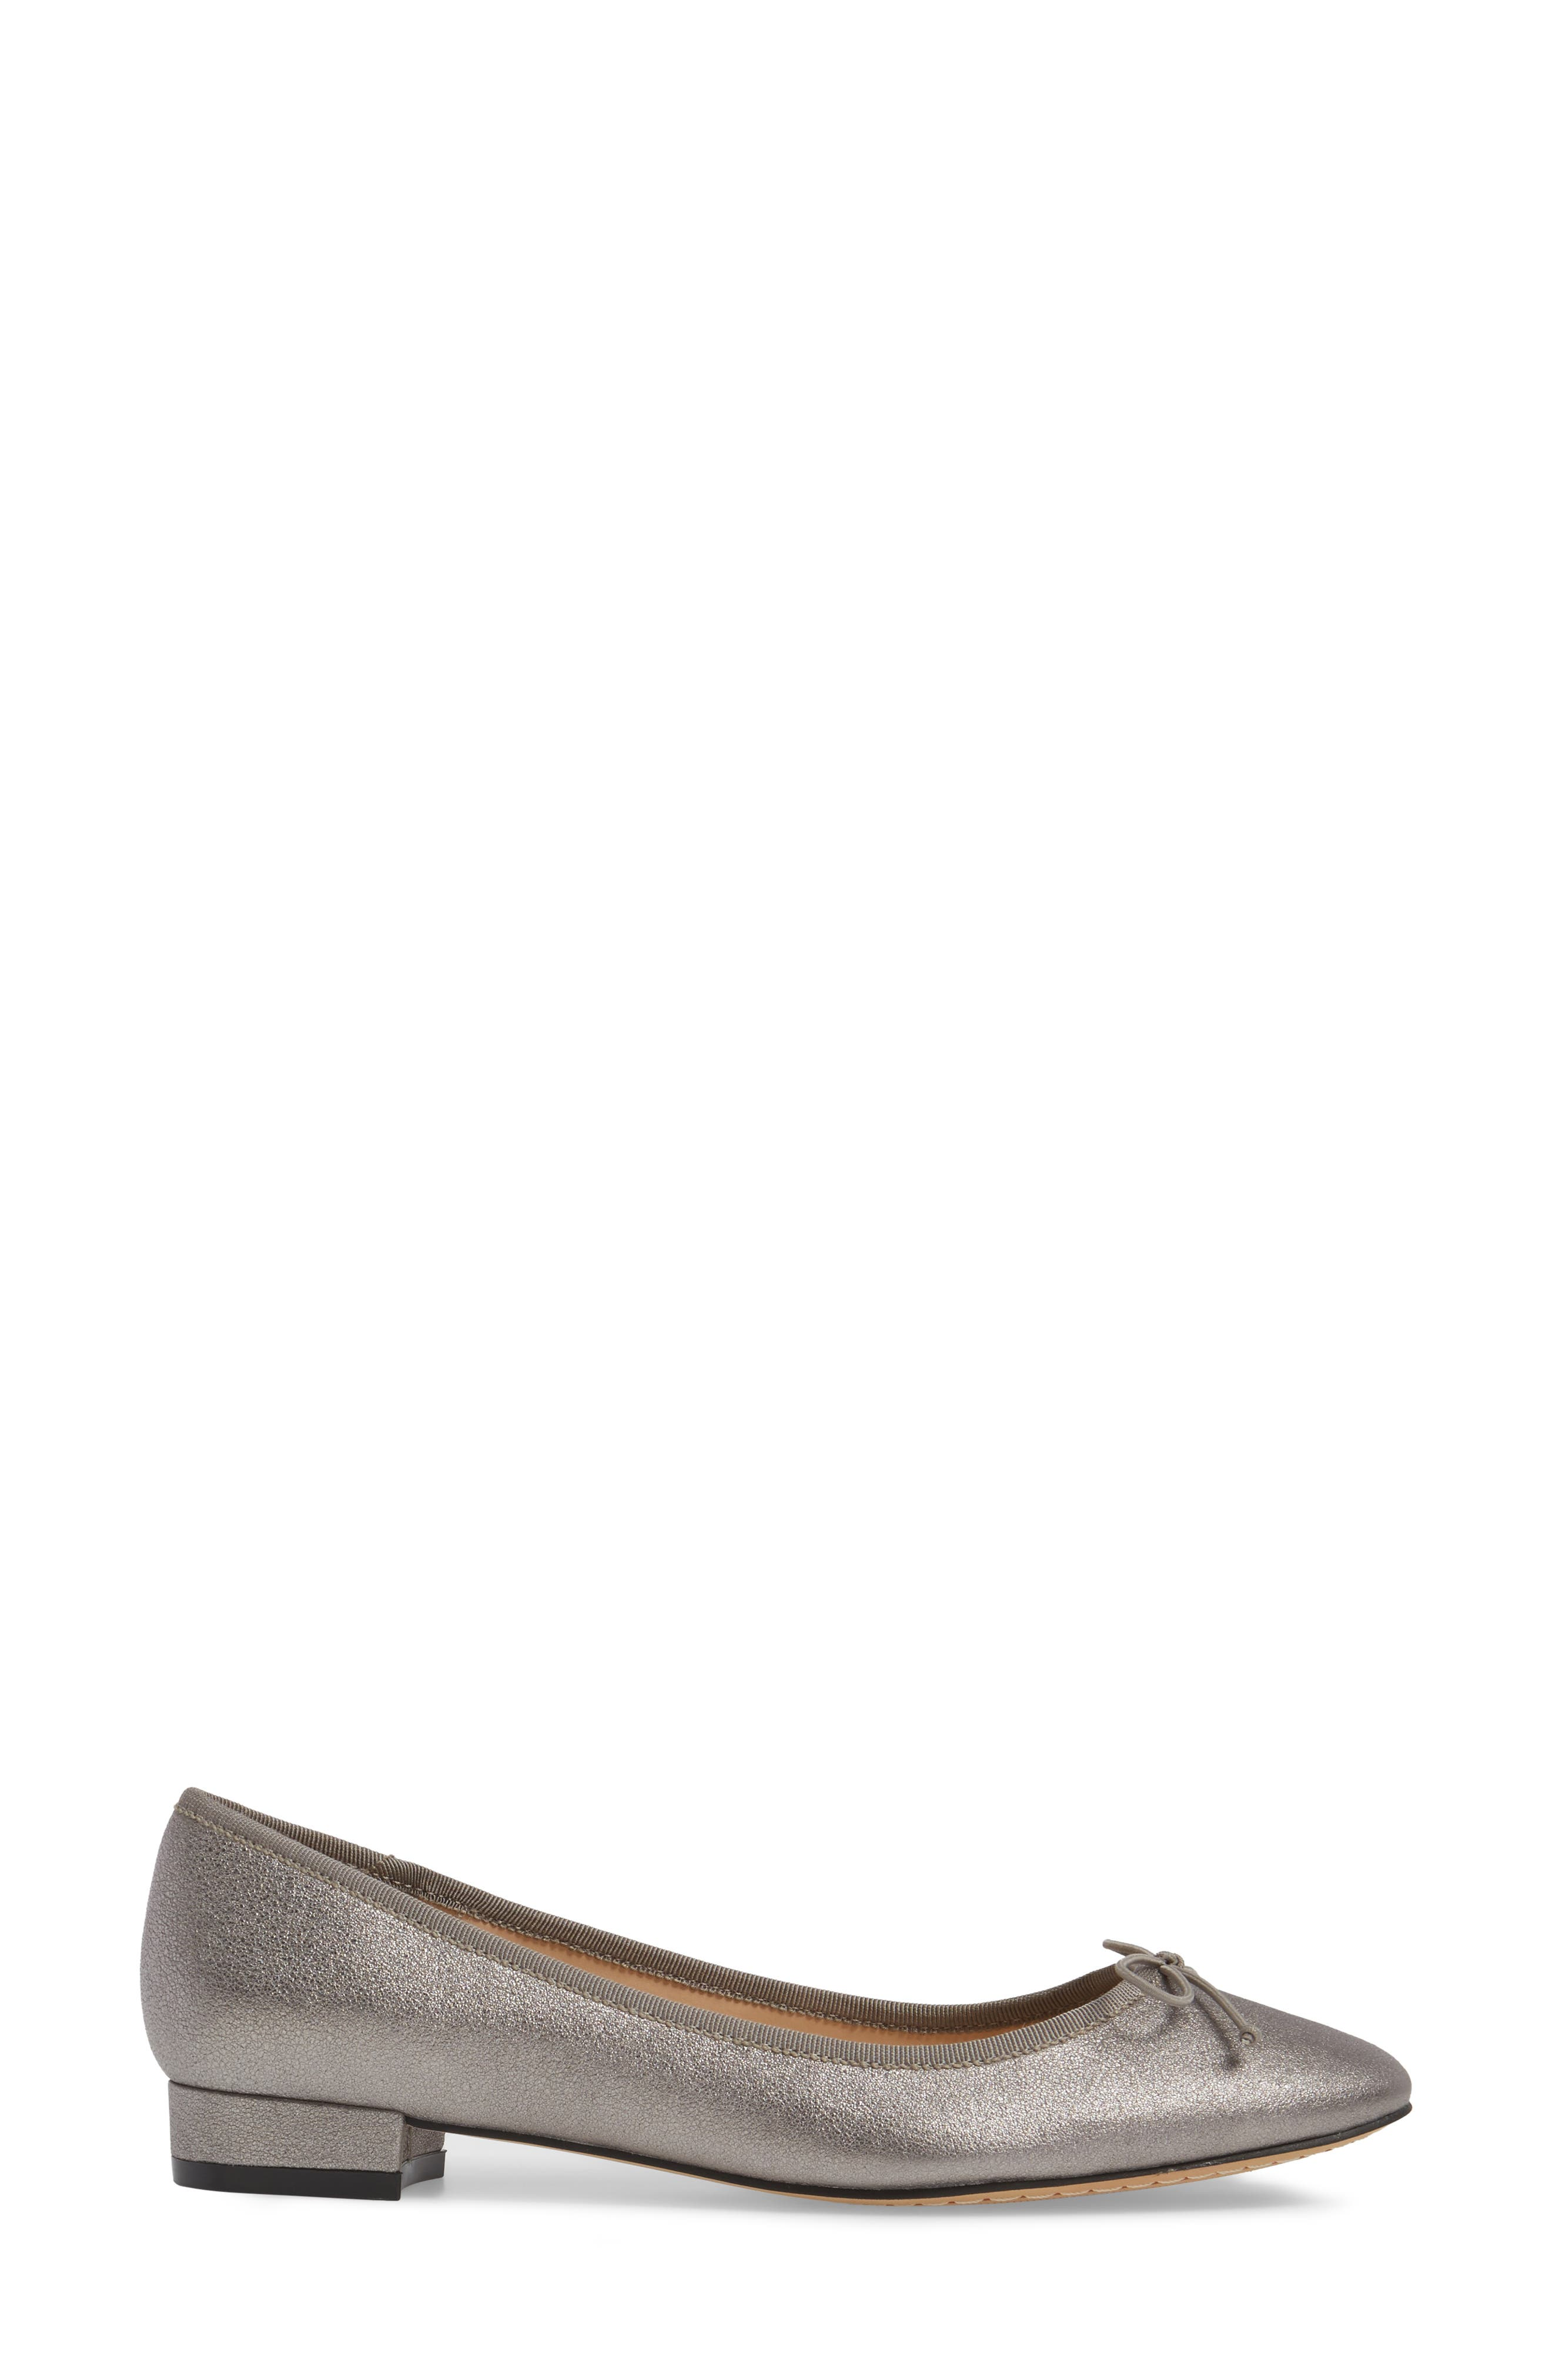 Alternate Image 3  - Vince Camuto Adema Flat (Women)